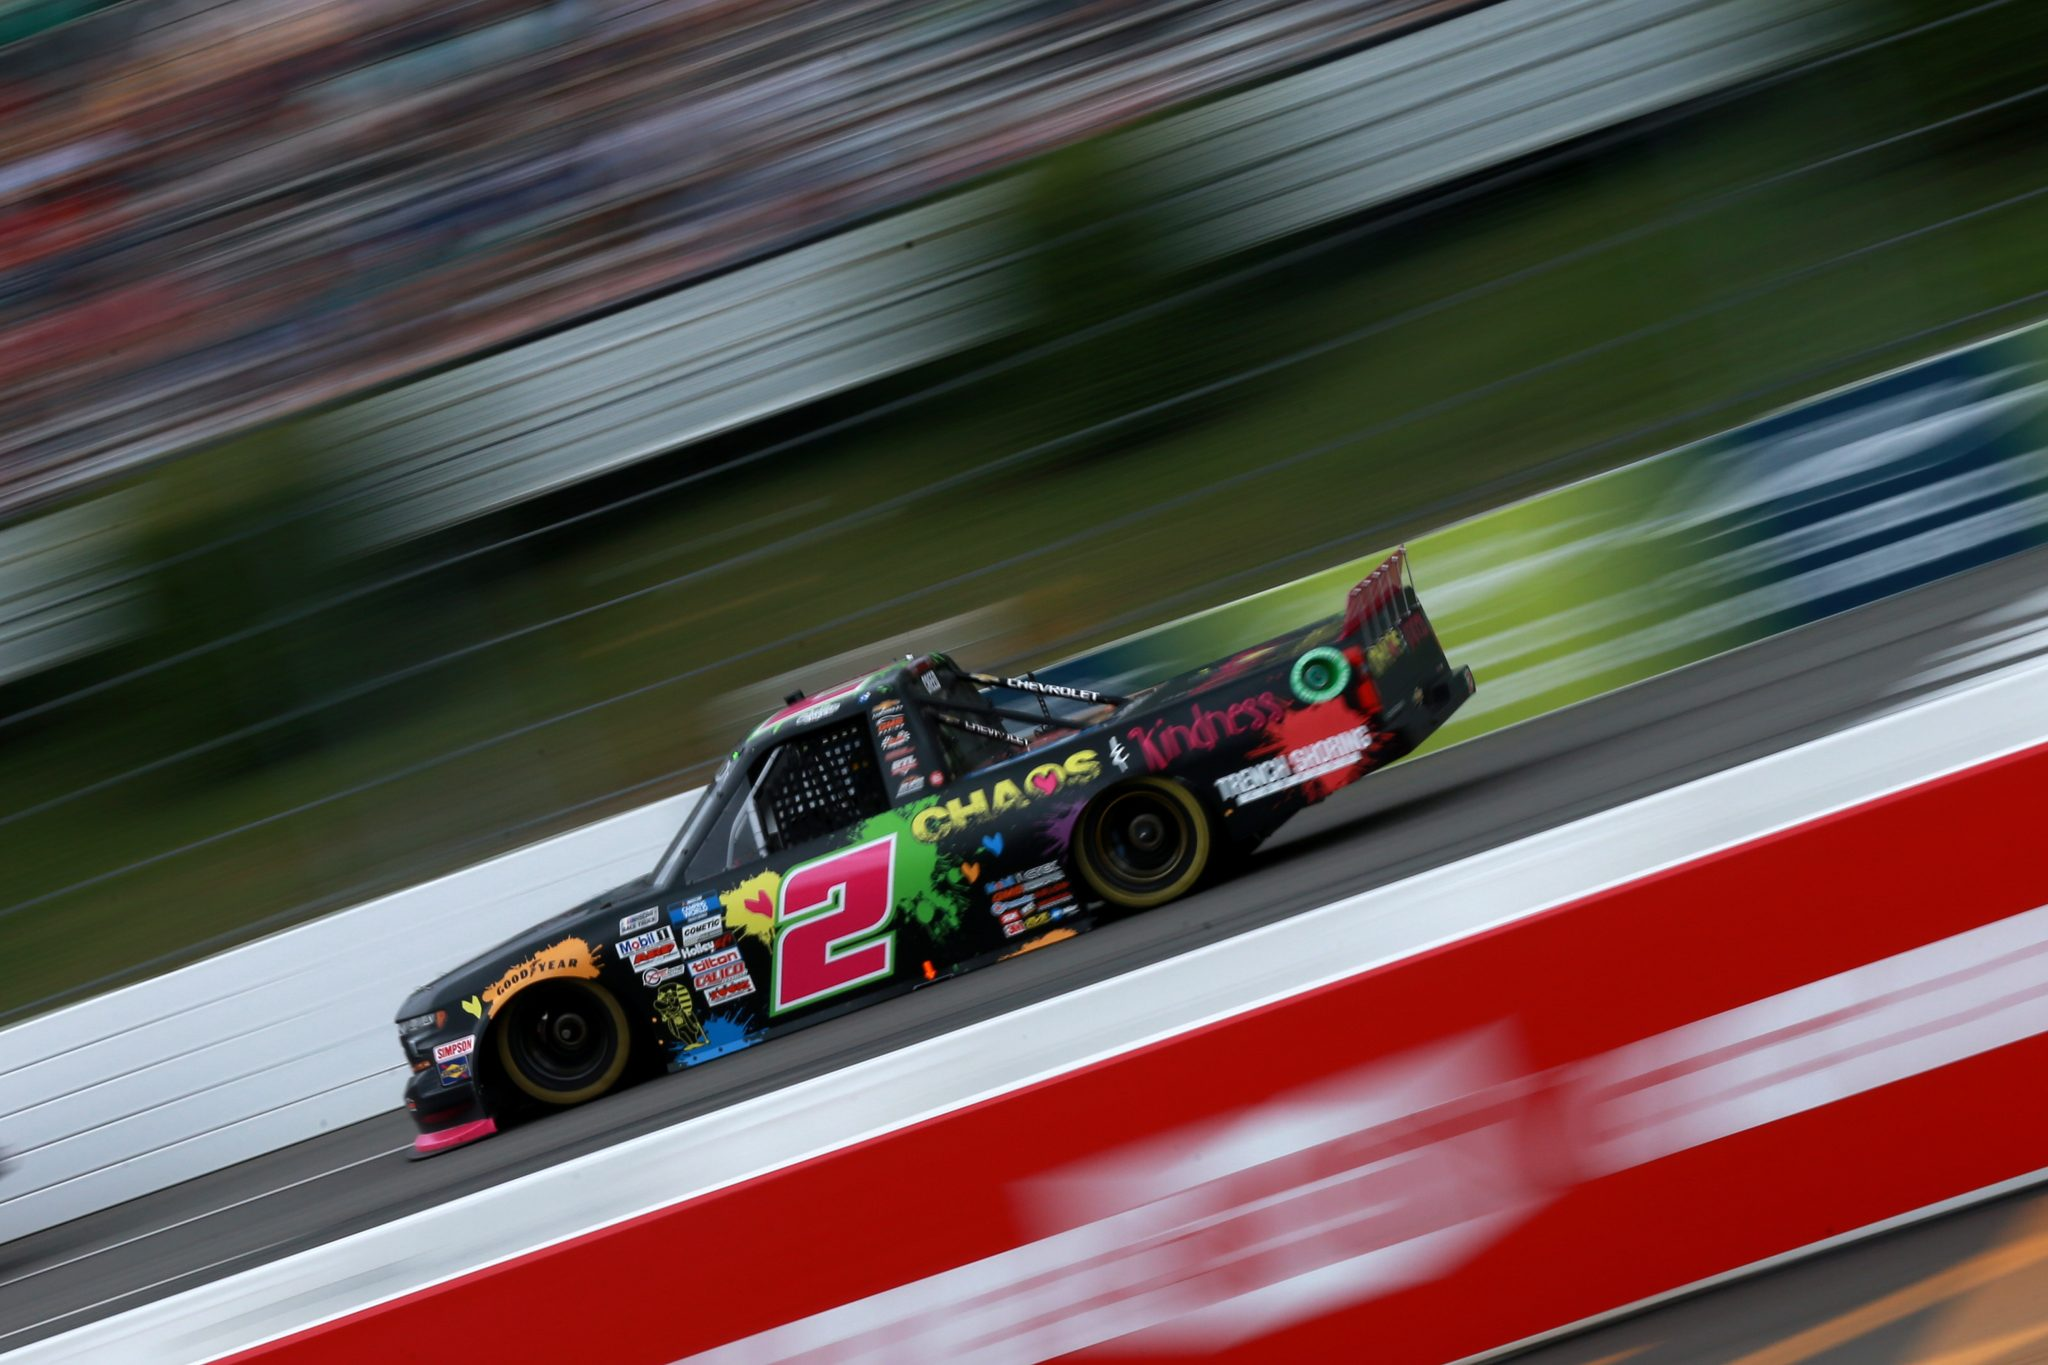 LONG POND, PENNSYLVANIA - JUNE 26: Sheldon Creed, driver of the #2 Chaos & Kindness Chevrolet, drives during the NASCAR Camping World Truck Series CRC Brakleen 150 at Pocono Raceway on June 26, 2021 in Long Pond, Pennsylvania. (Photo by Sean Gardner/Getty Images)   Getty Images